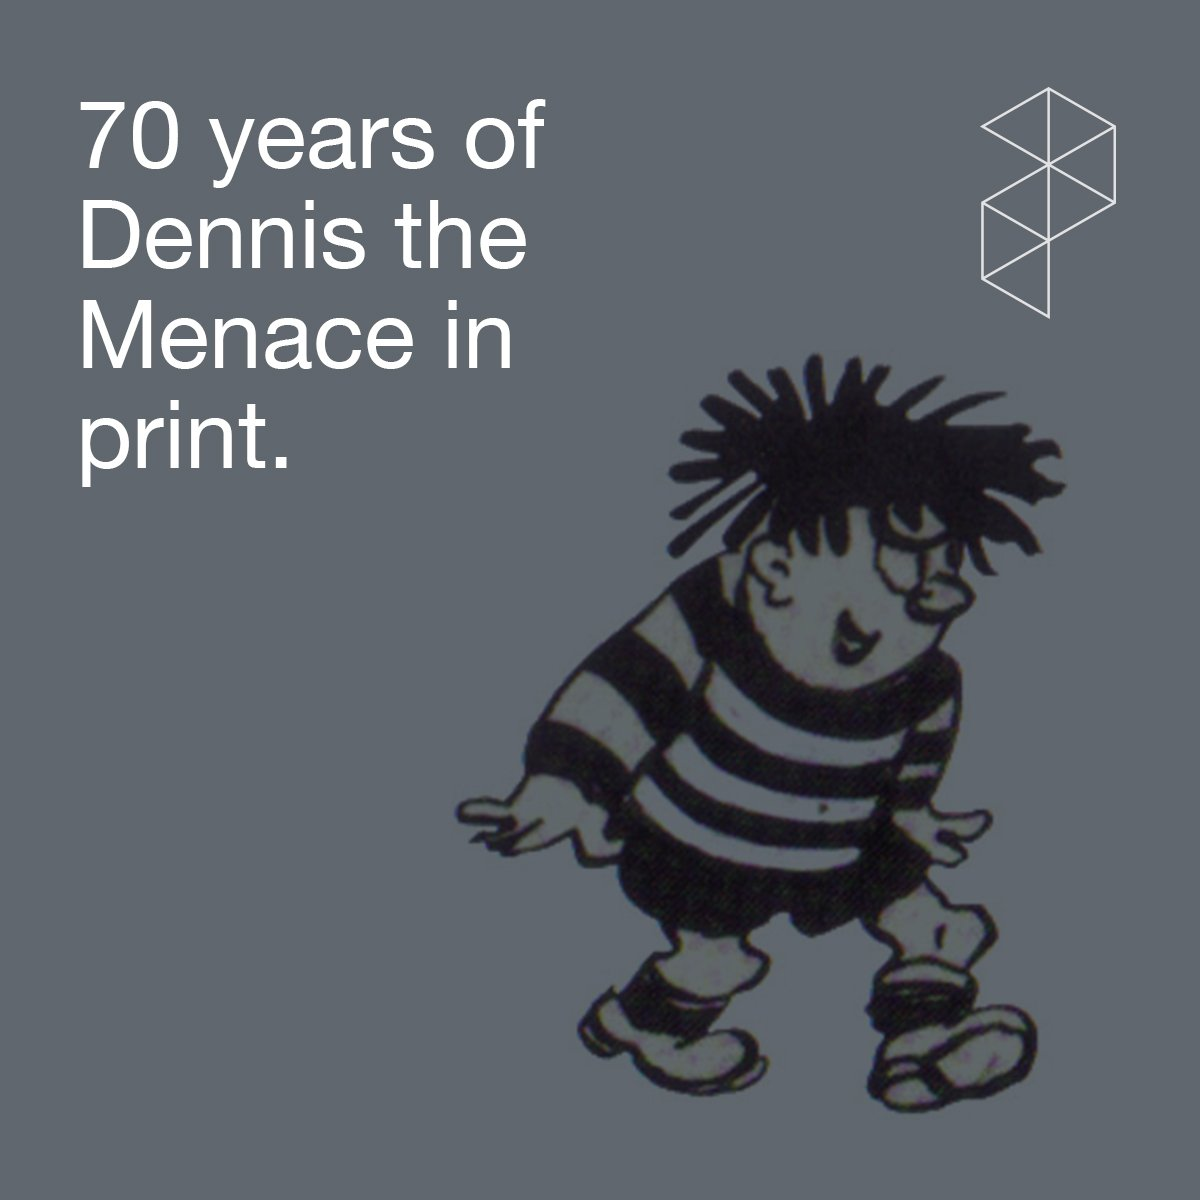 70 years of Dennis the Menace in print